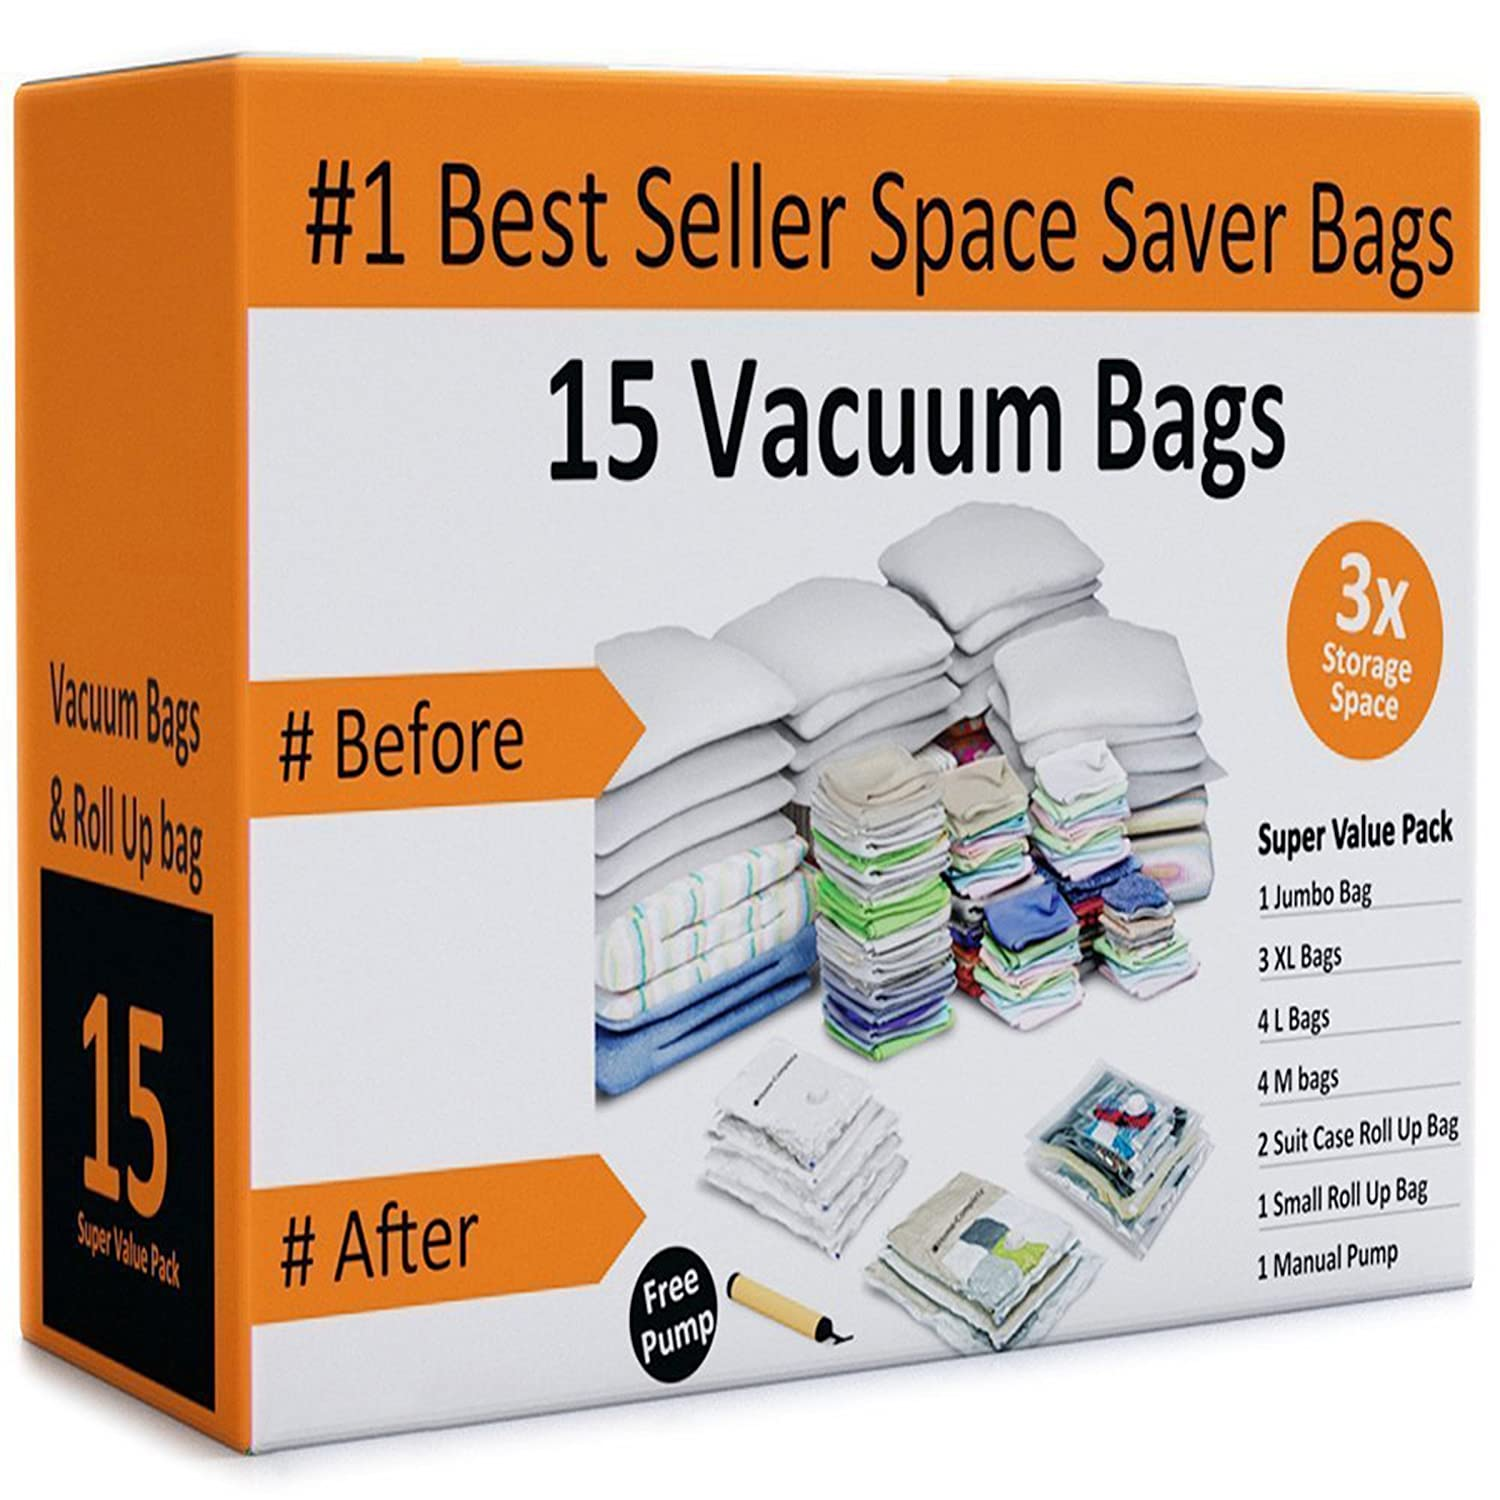 Everyday Home 83-77 Vacuum Storage Bags-Space Saving Air Tight Compression-Shrink Down Closet Clutter, Store and Organize Clothes, Linens, Seasonal ...